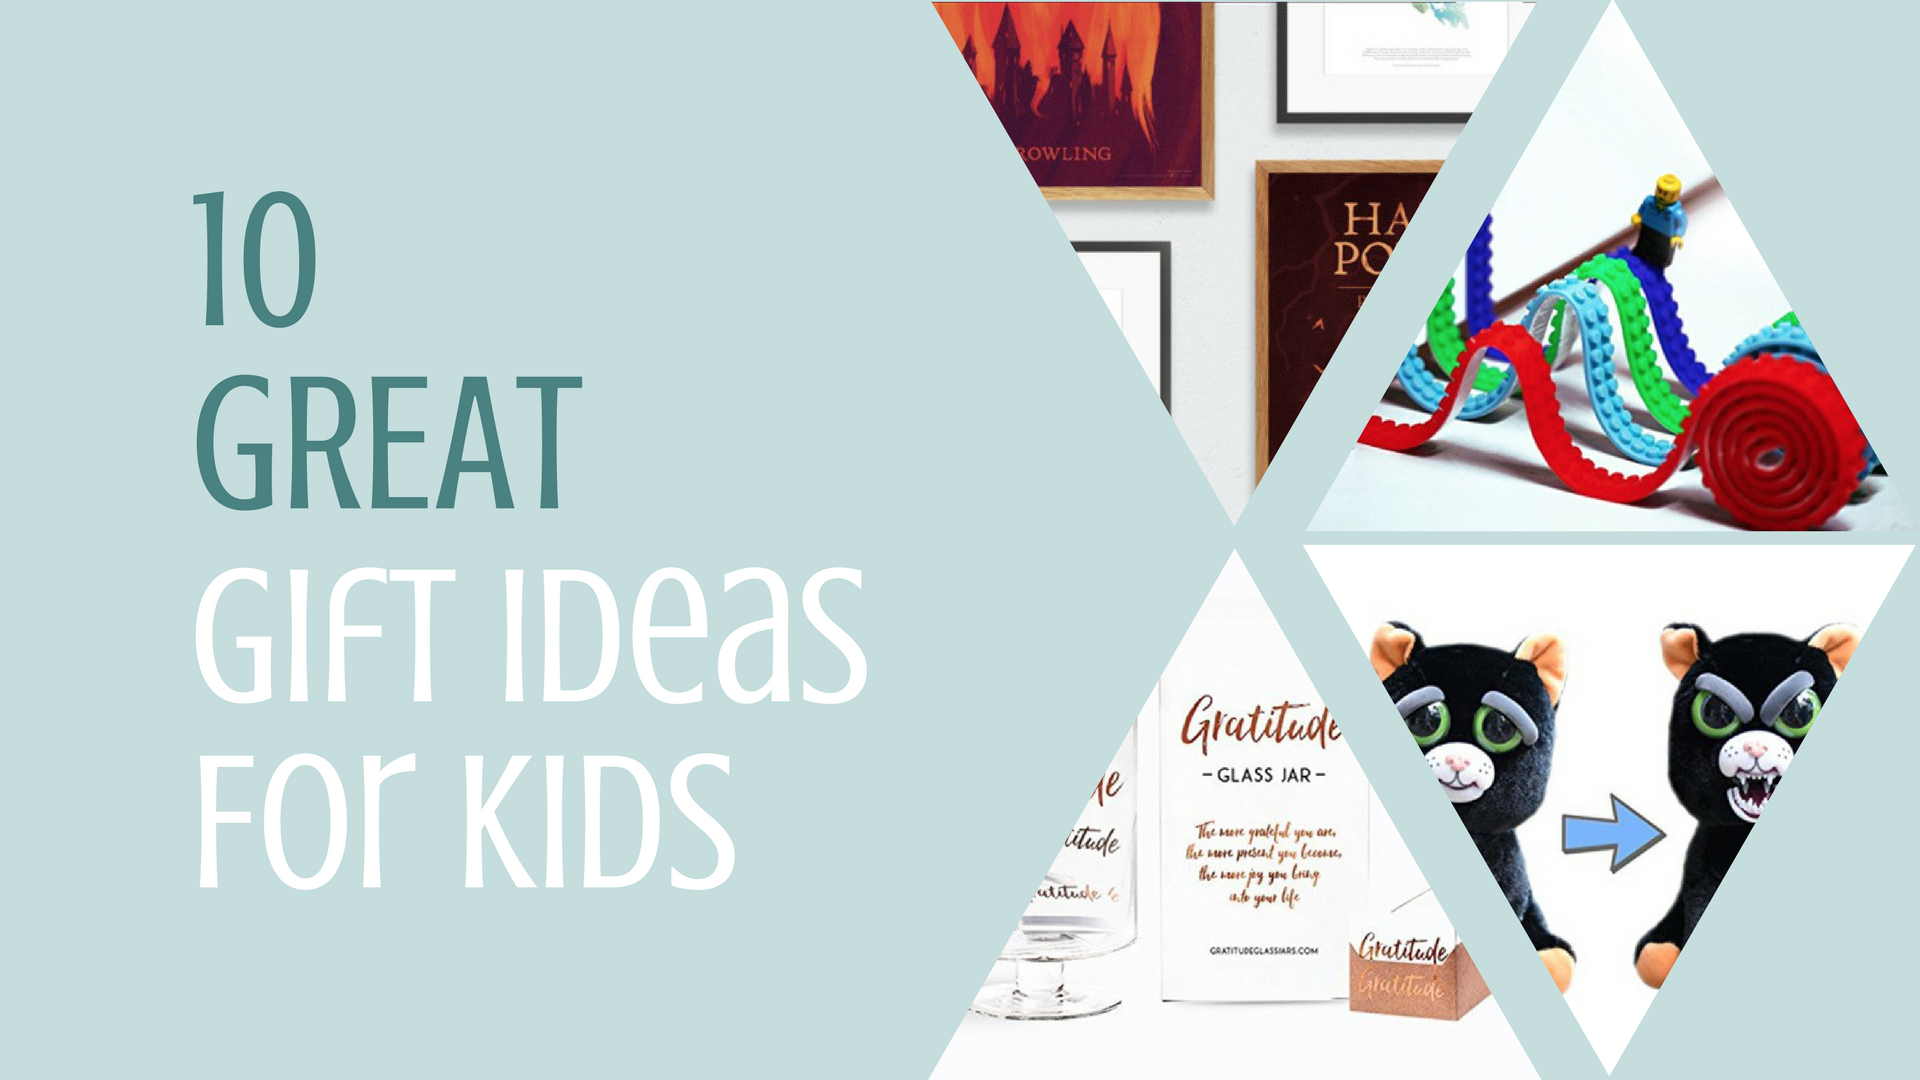 10 great gift ideas for kids